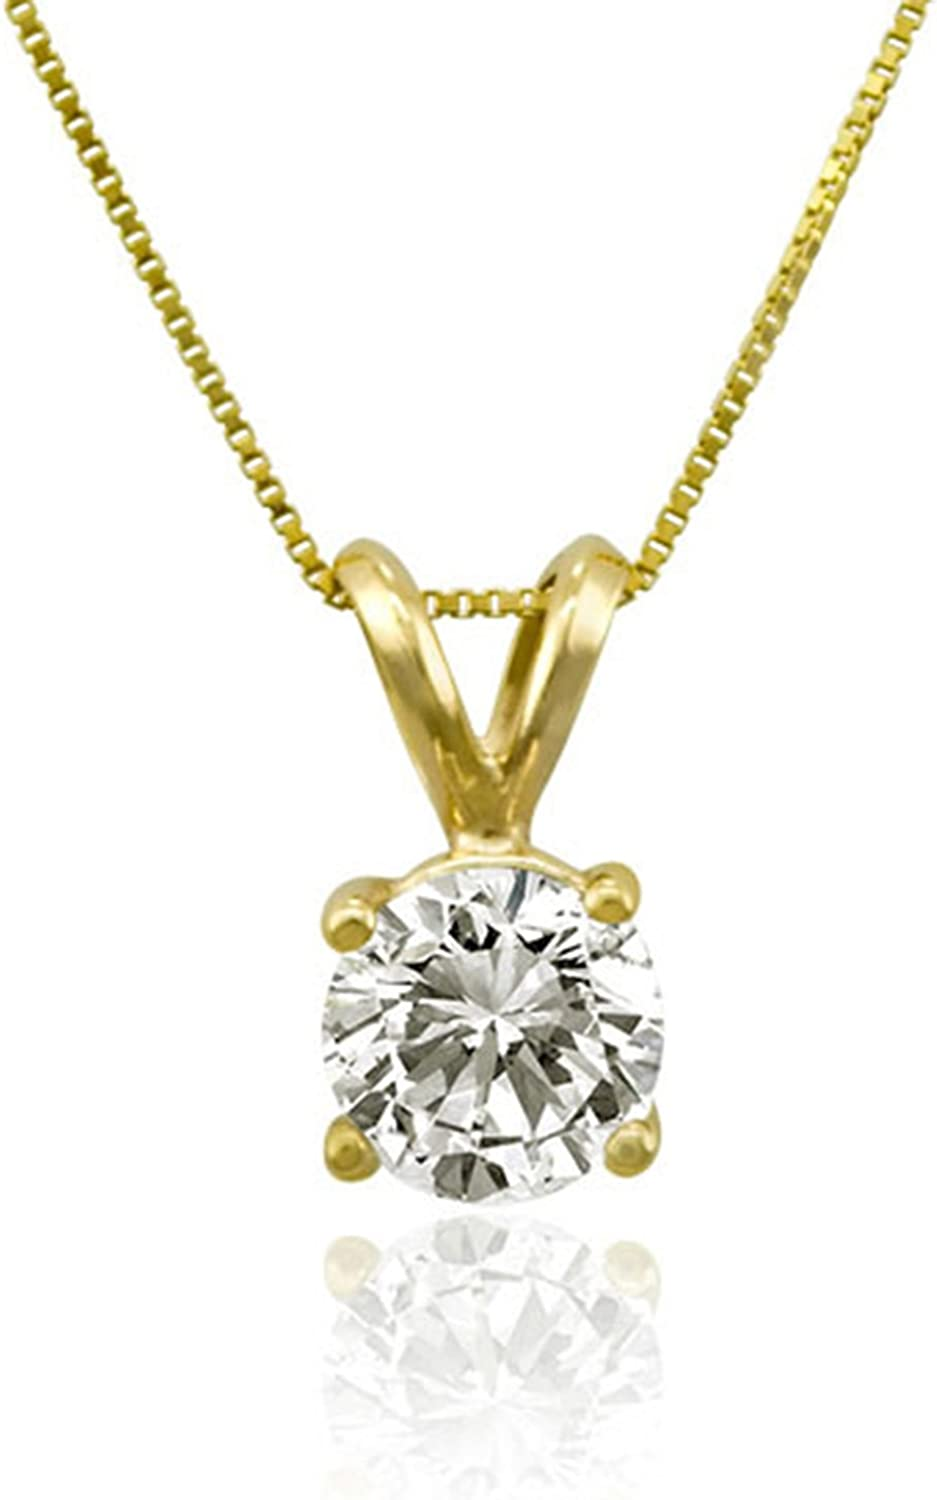 Clara Pucci 2.70 CT Brilliant Round Cut Conflict-Free VVS1 Ideal Gemstone Simulated Diamond Solid 14k Yellow Gold Solitaire Pendant Box Necklace 16